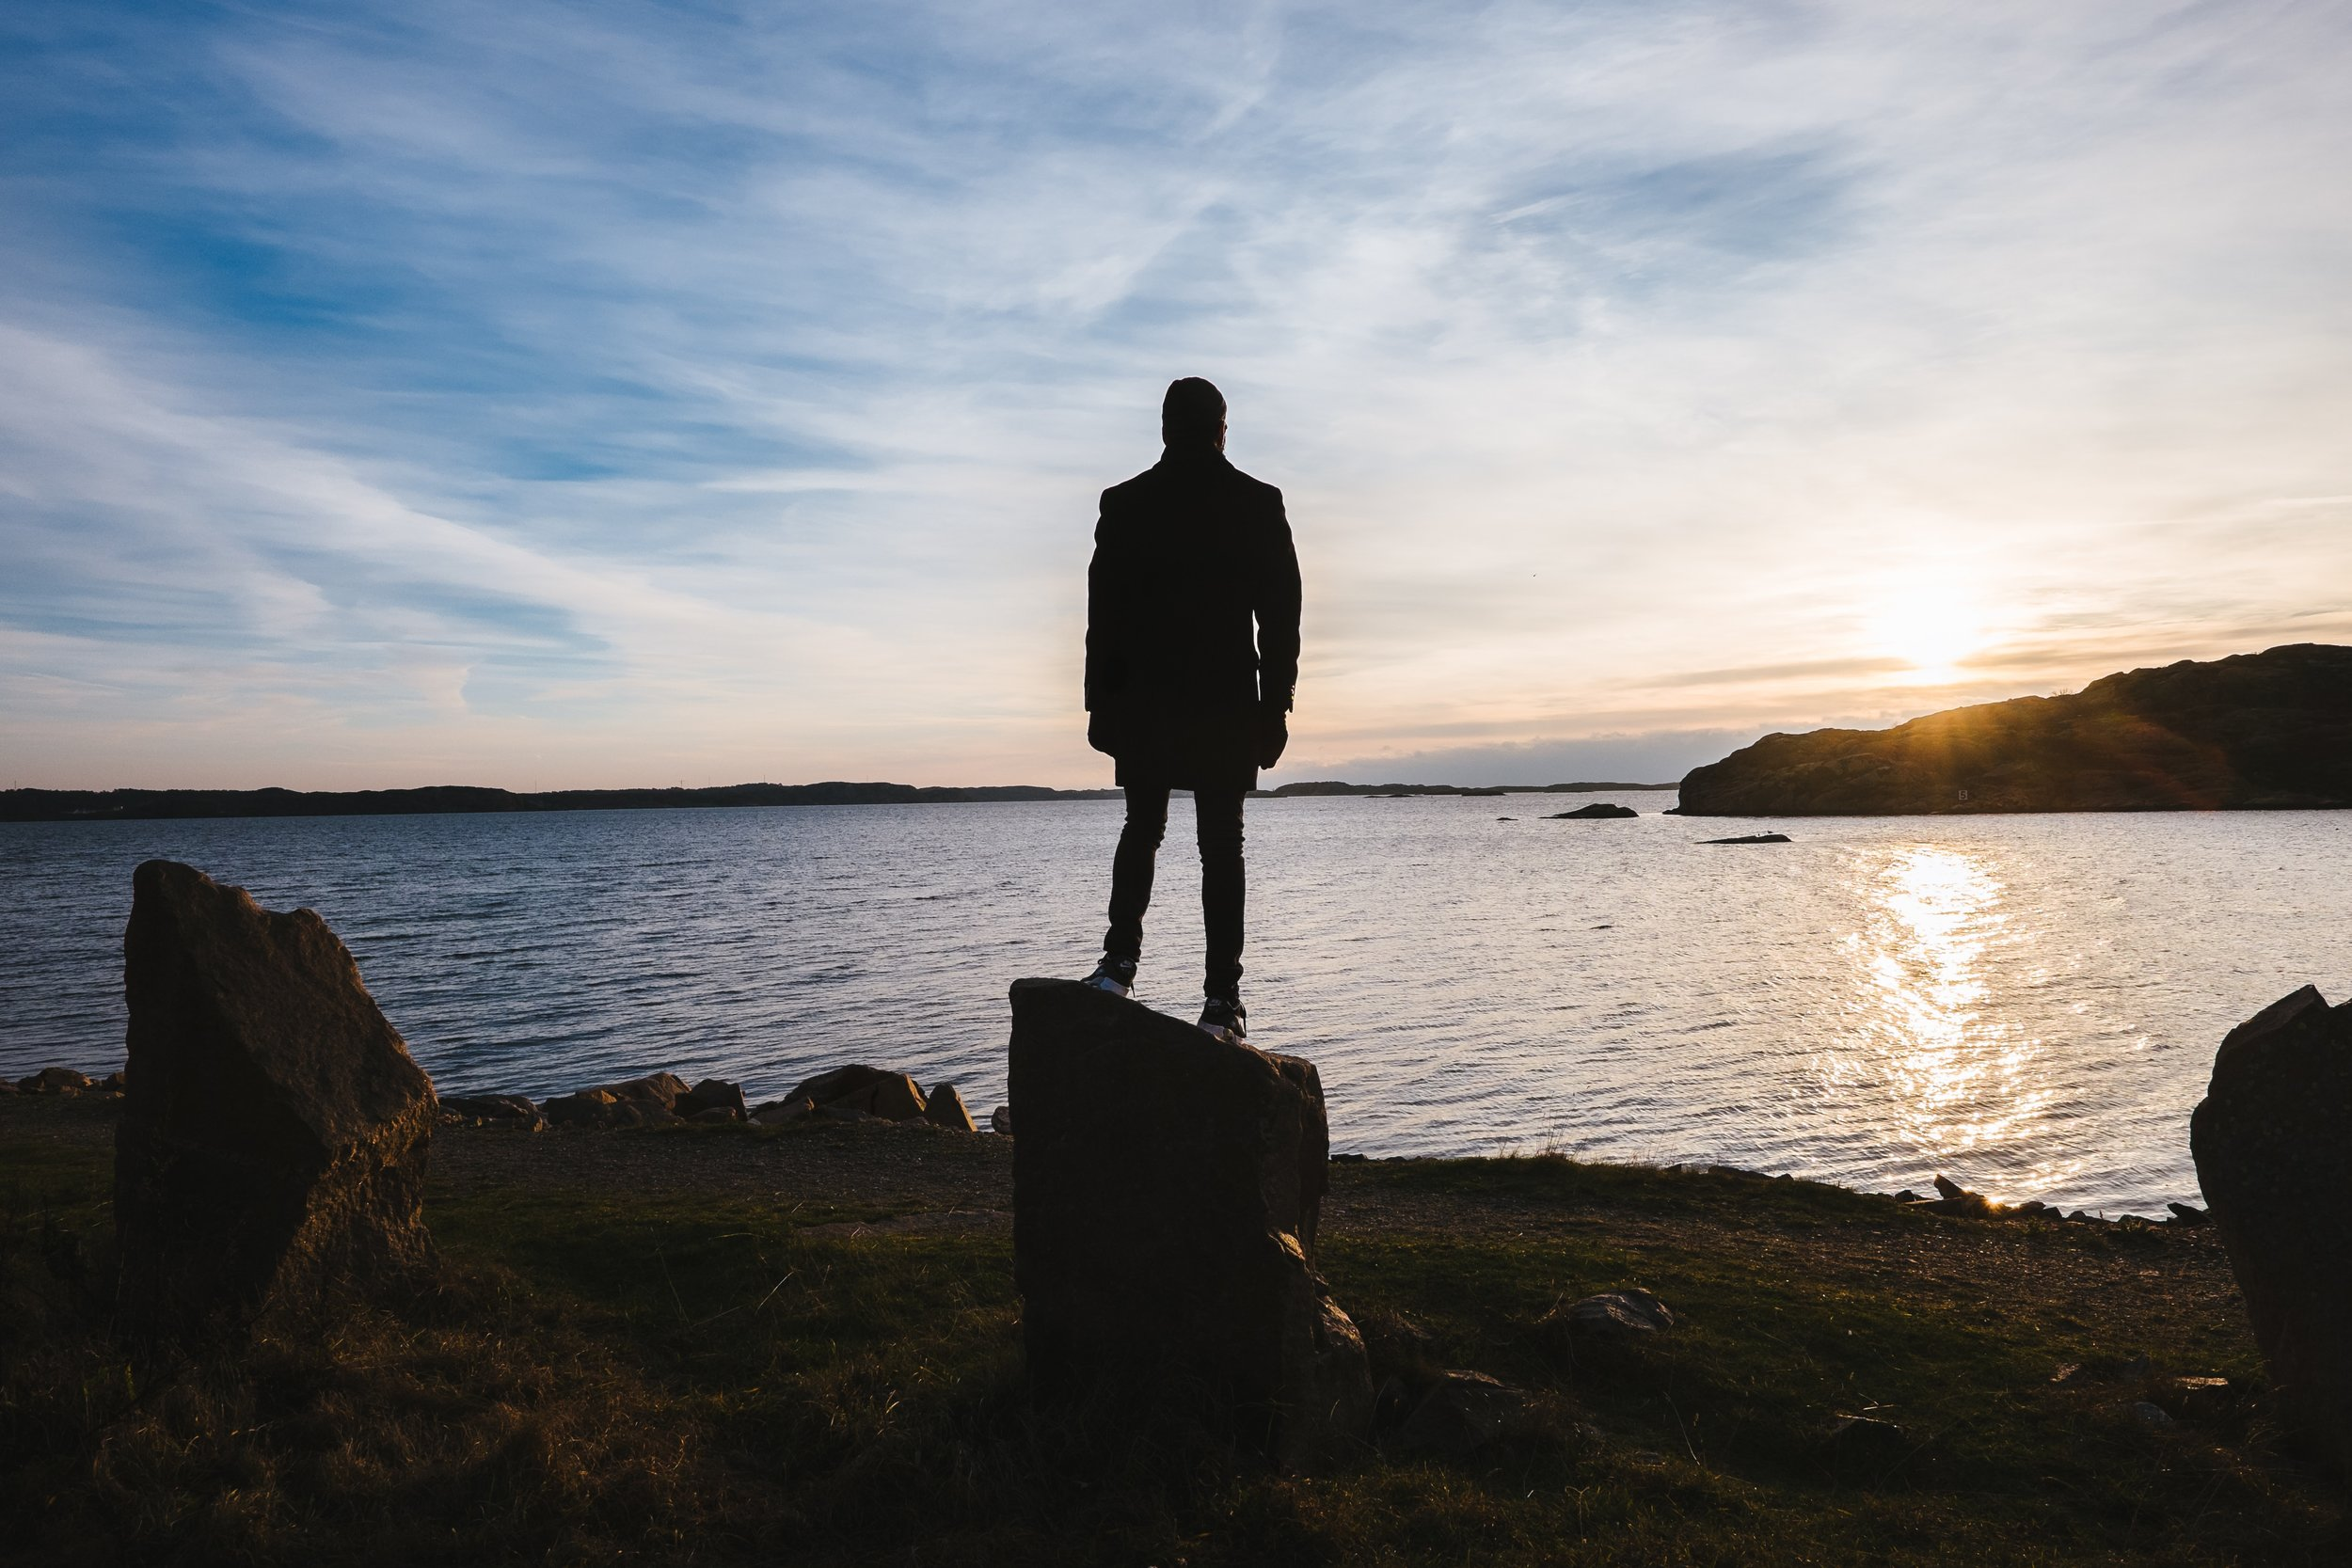 Anxious man standing on rock looking at sunset over water